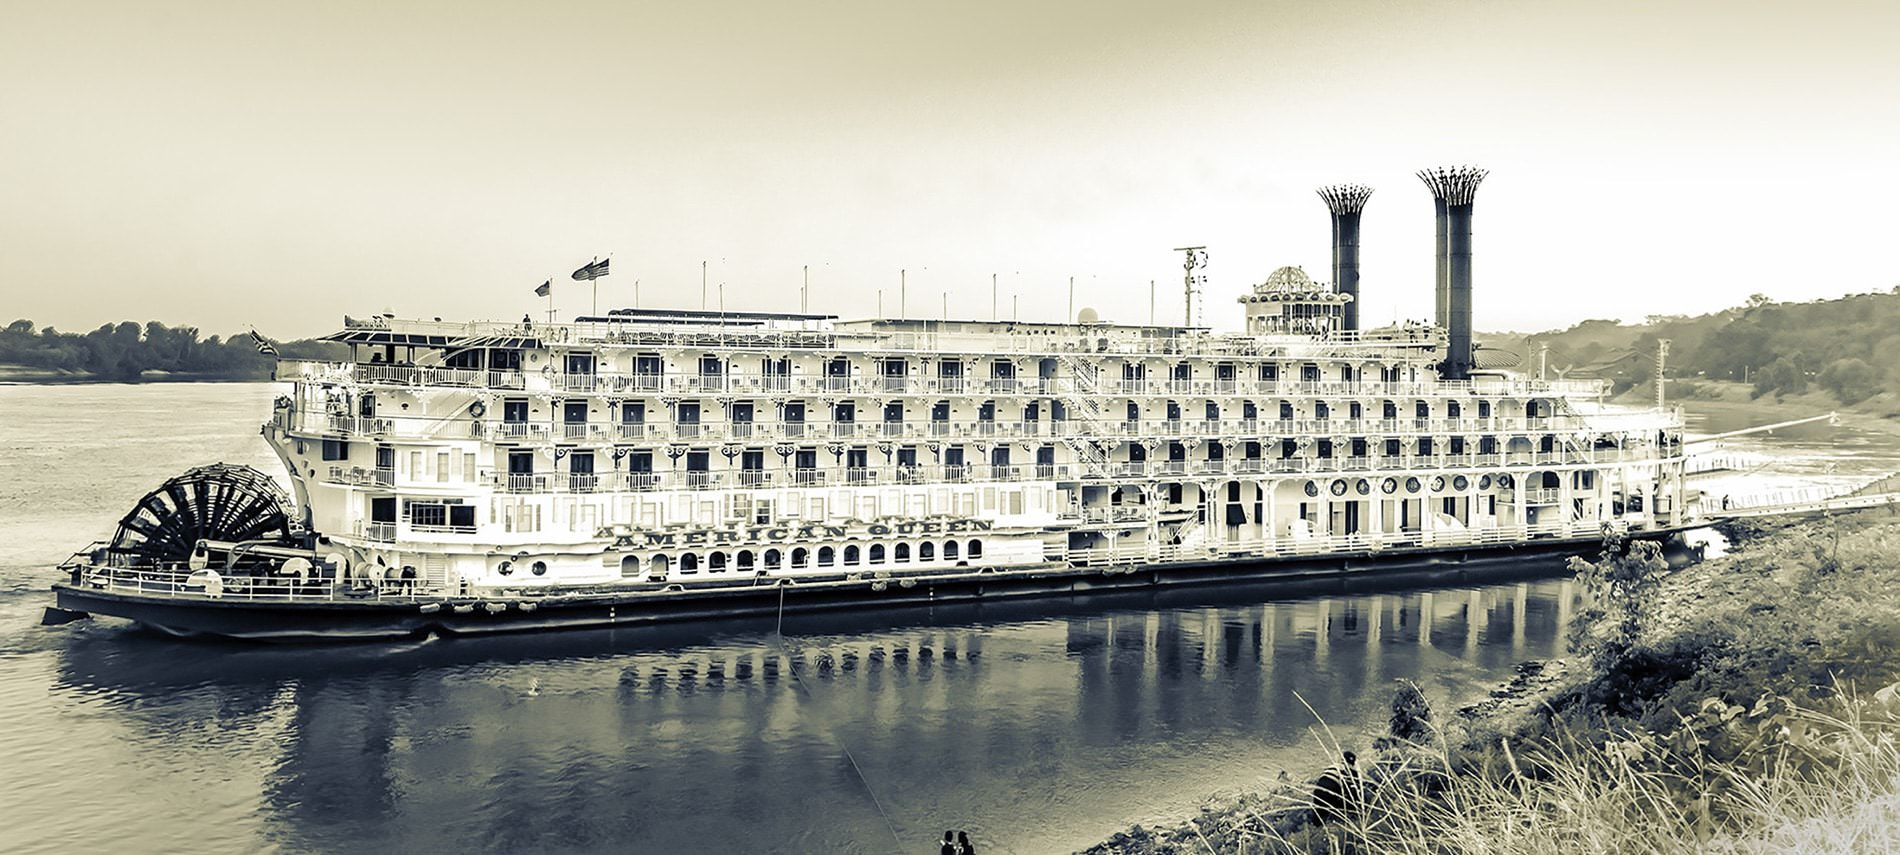 Large, intricate ship sitting on the water with the name American Queen in sepia tones